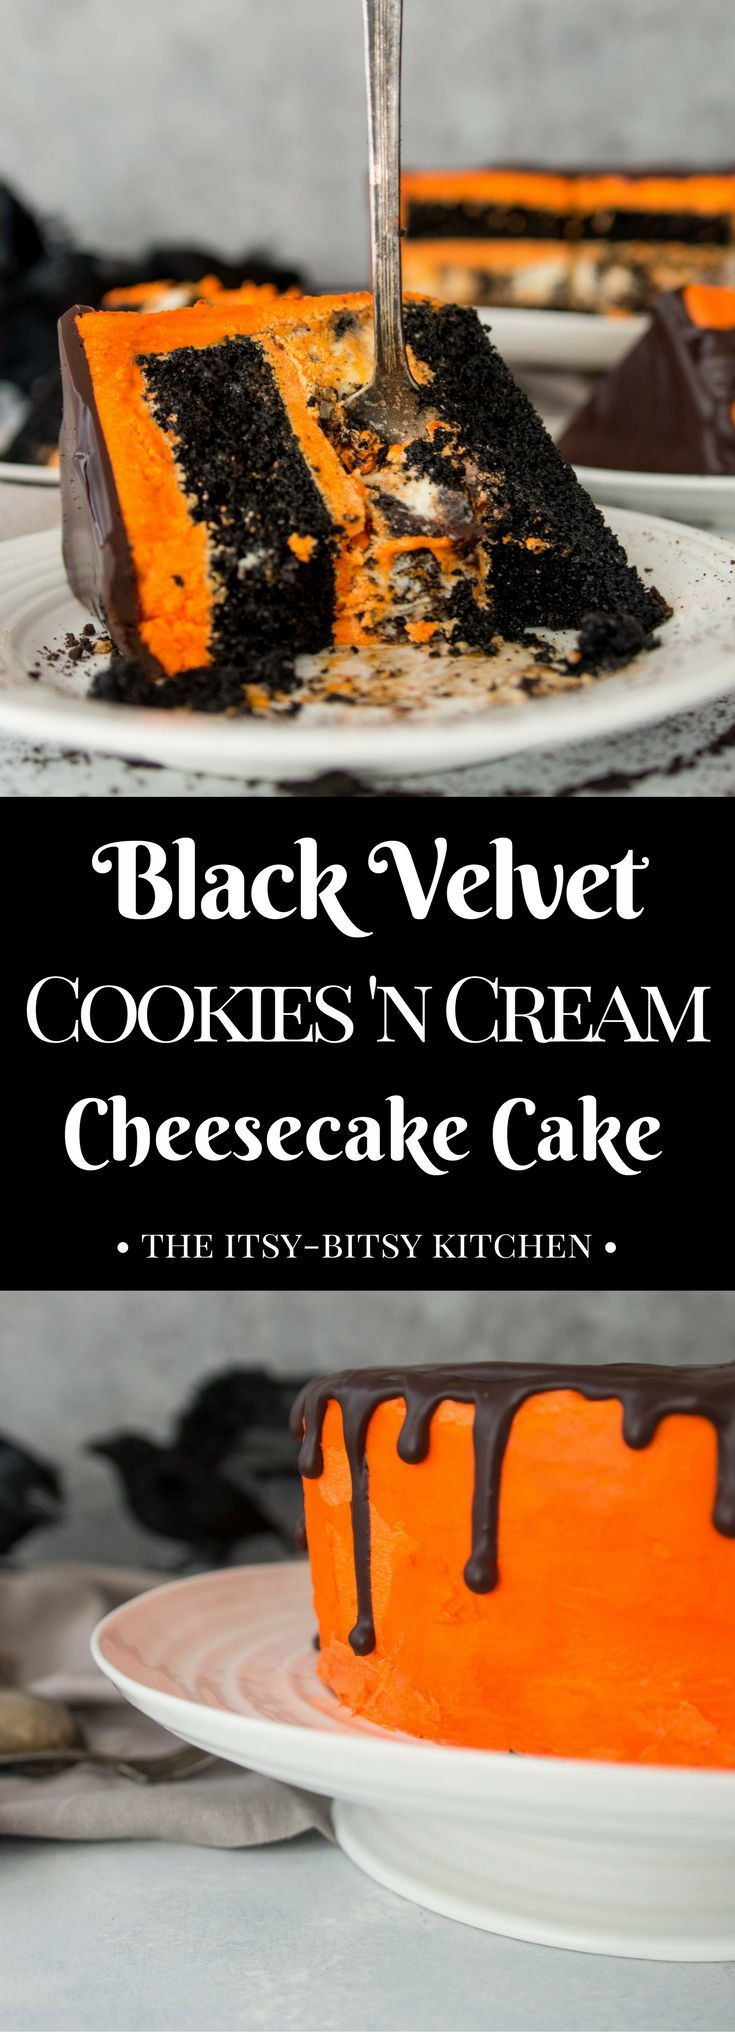 Recipe for black velvet cookies 'n cream cheesecake cake--full of chocolate and Halloween spirit! Perfect #Halloween party food! #chocolate #cheesecake